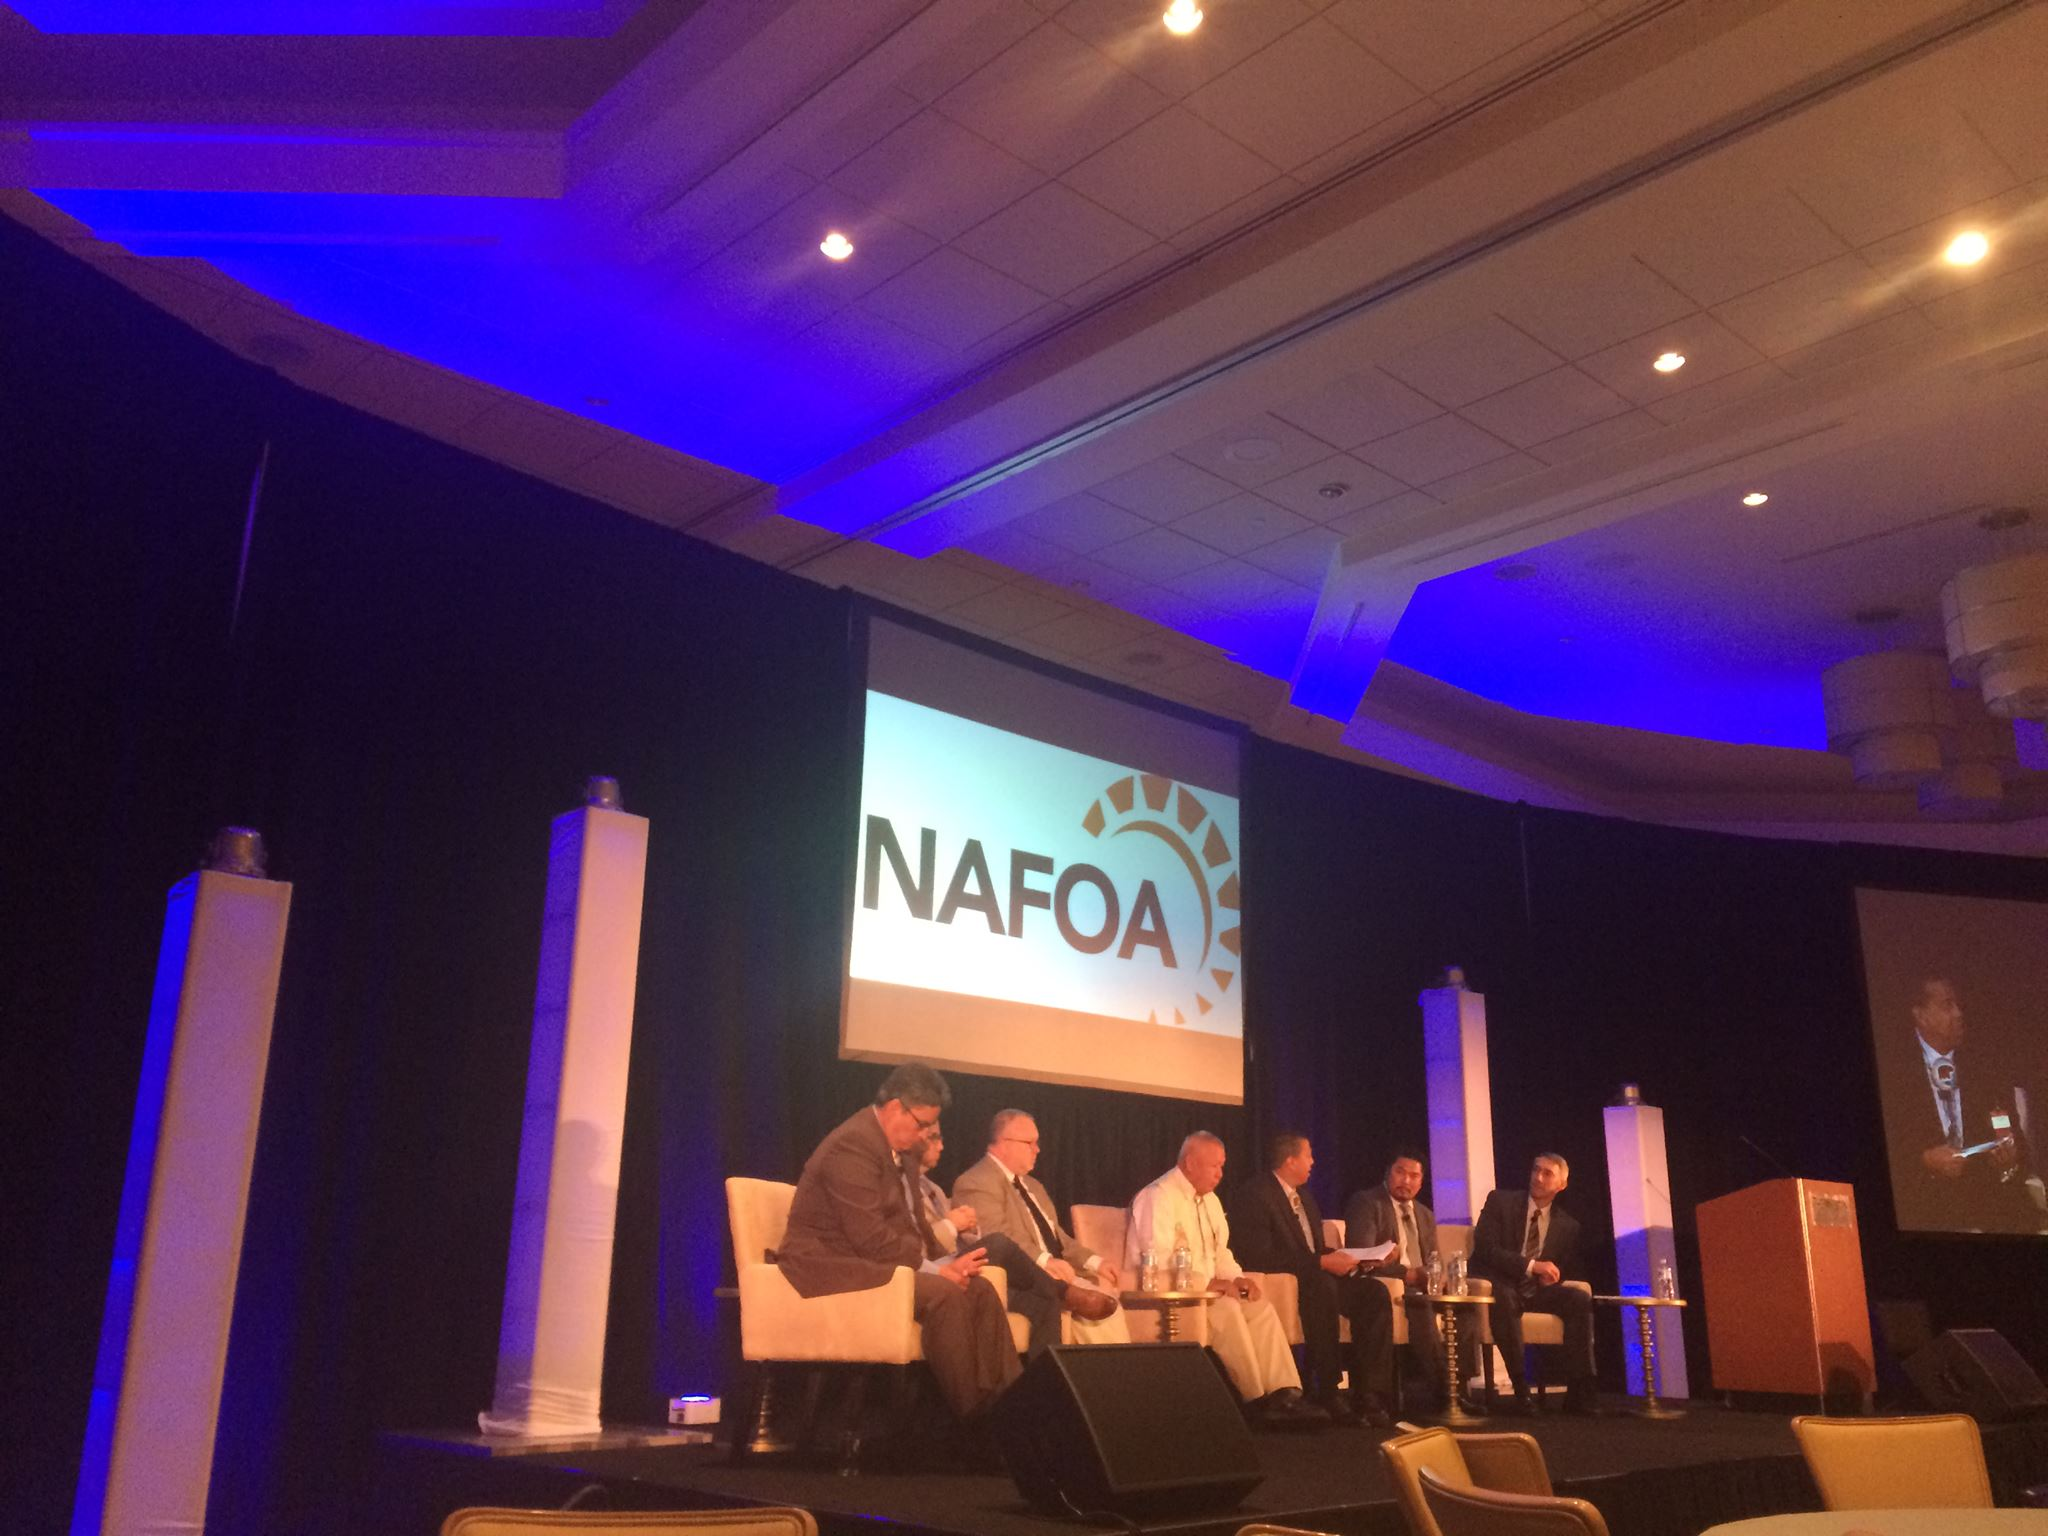 NAFOA kicks off tribal economies conference in Massachusetts